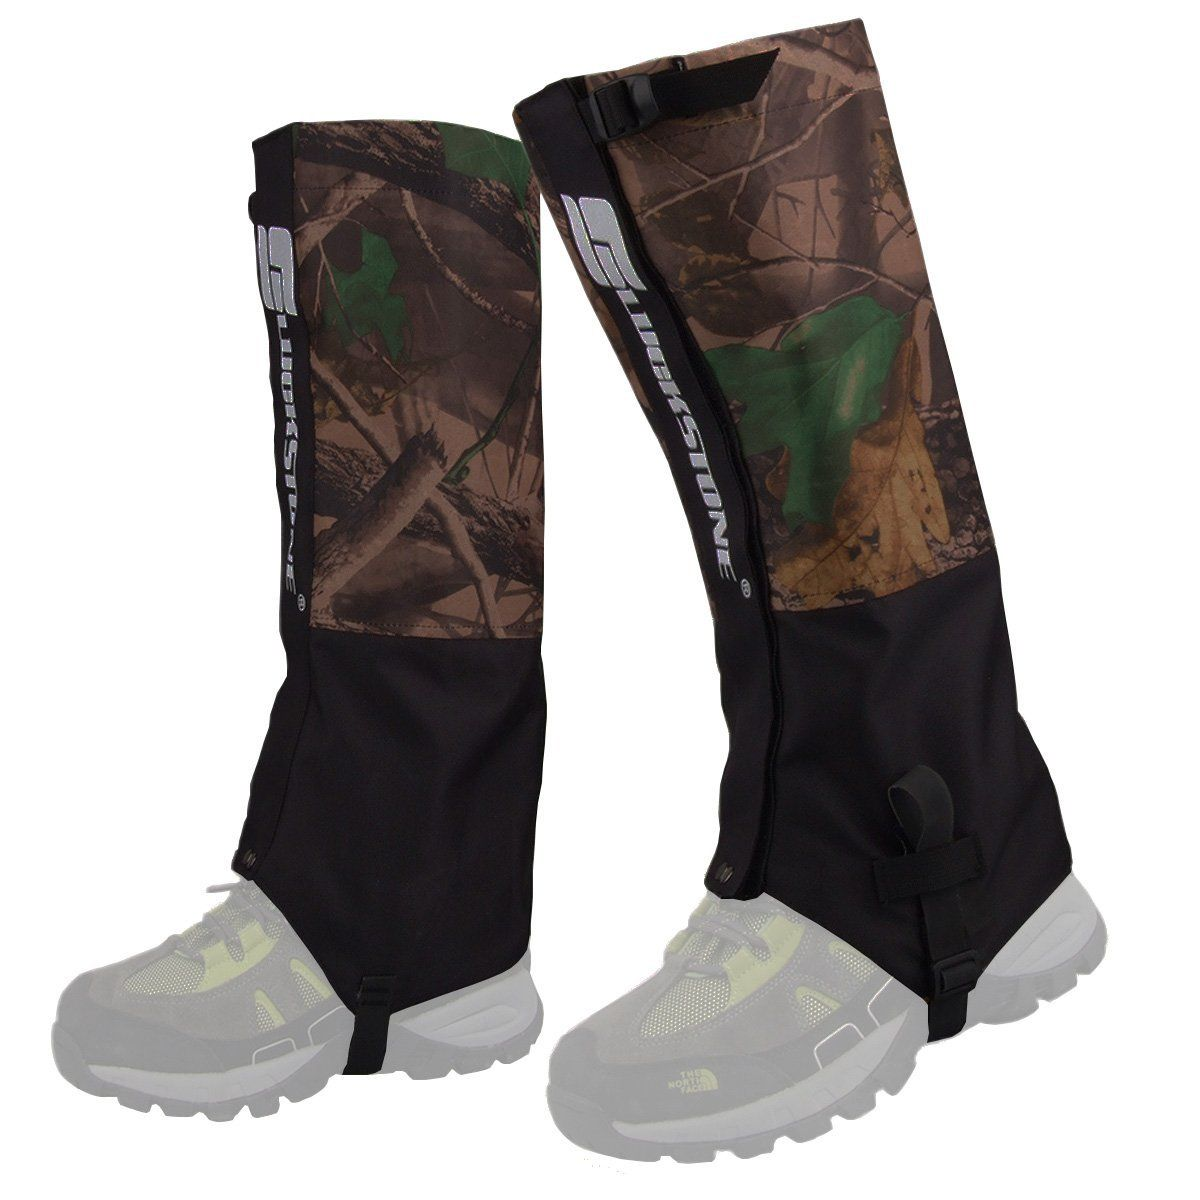 Outdoor Hiking Climbing Boots Gaiters Waterproof Snow Leg Legging Shoes Covers